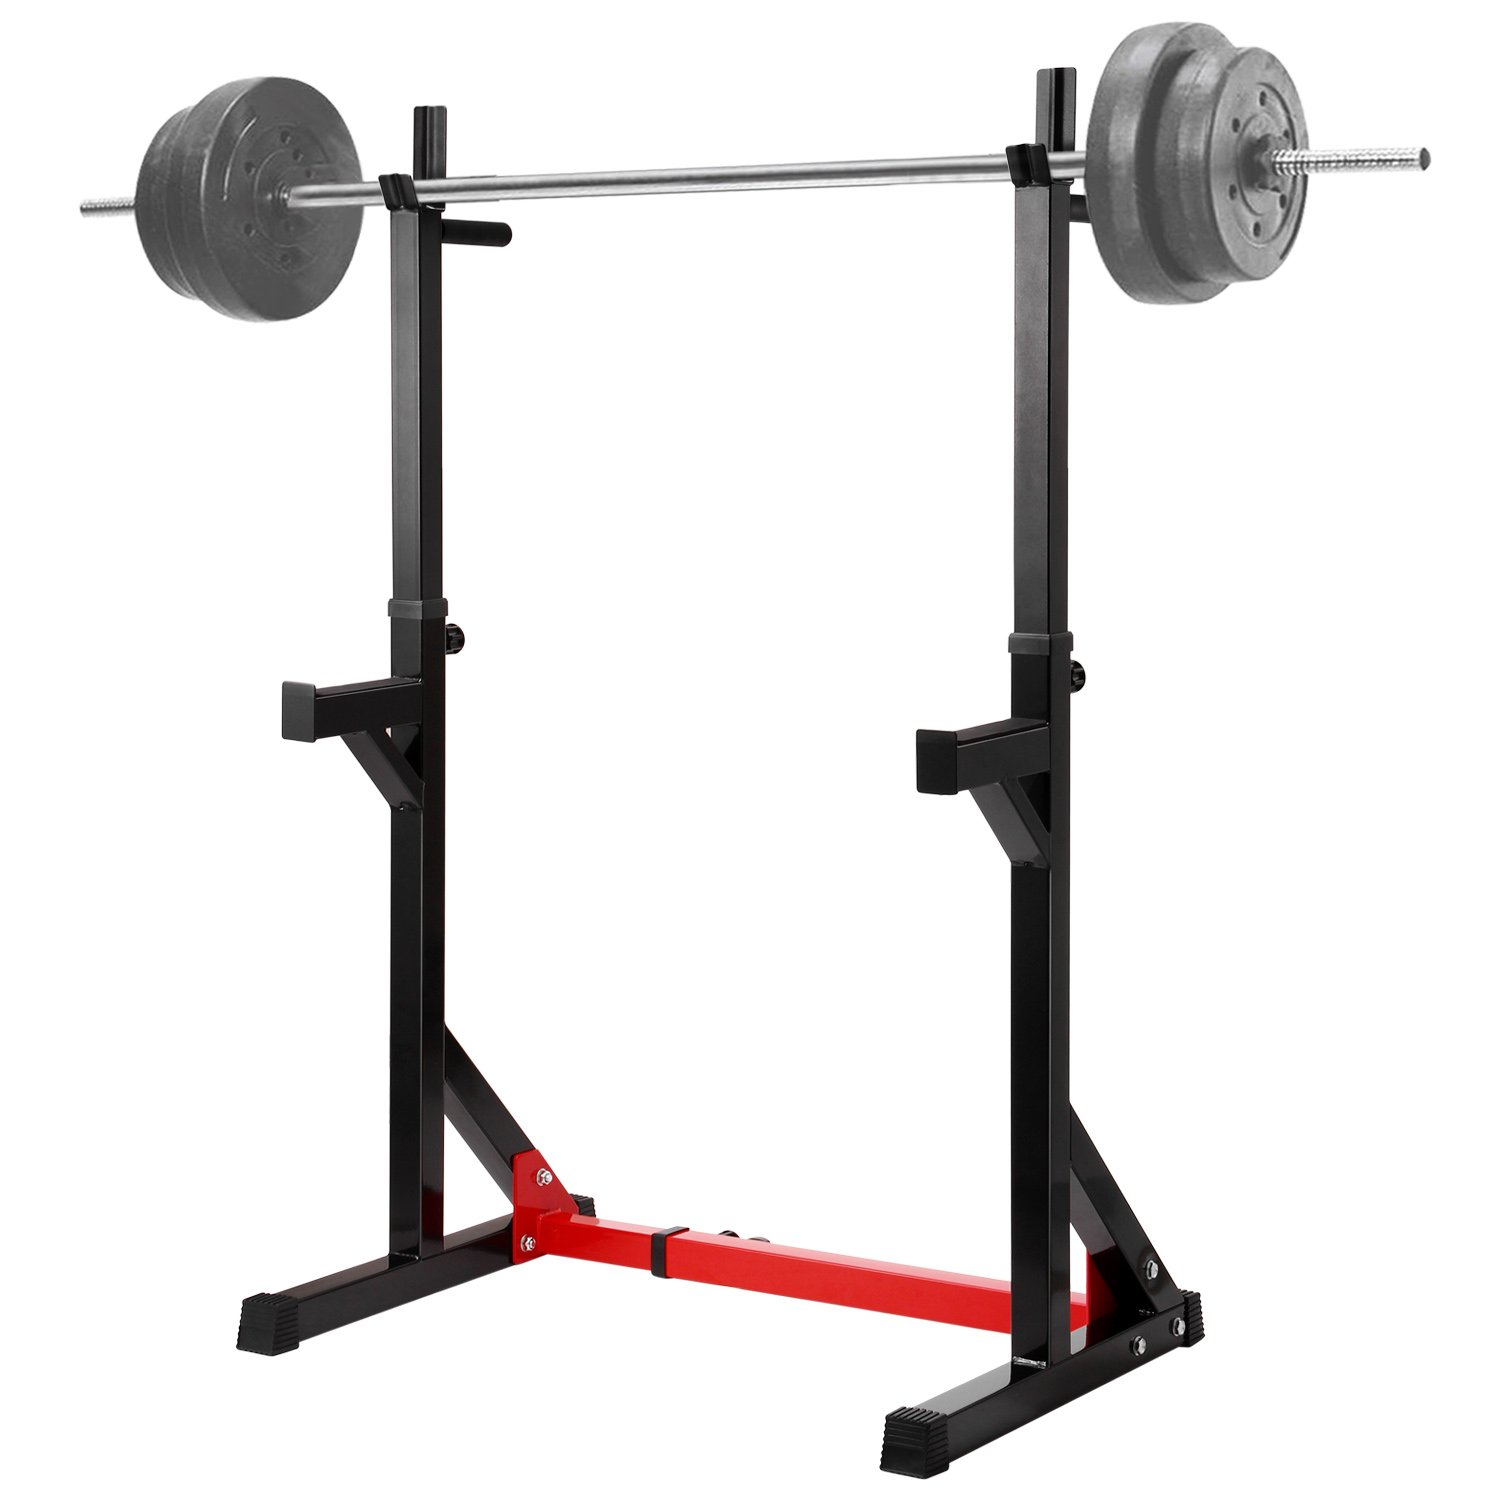 Black Ollieroo MultiFunction Barbell Rack Dip Stand Gym Family Fitness Adjustable Squat Rack Weight Lifting Bench Press Dipping Station